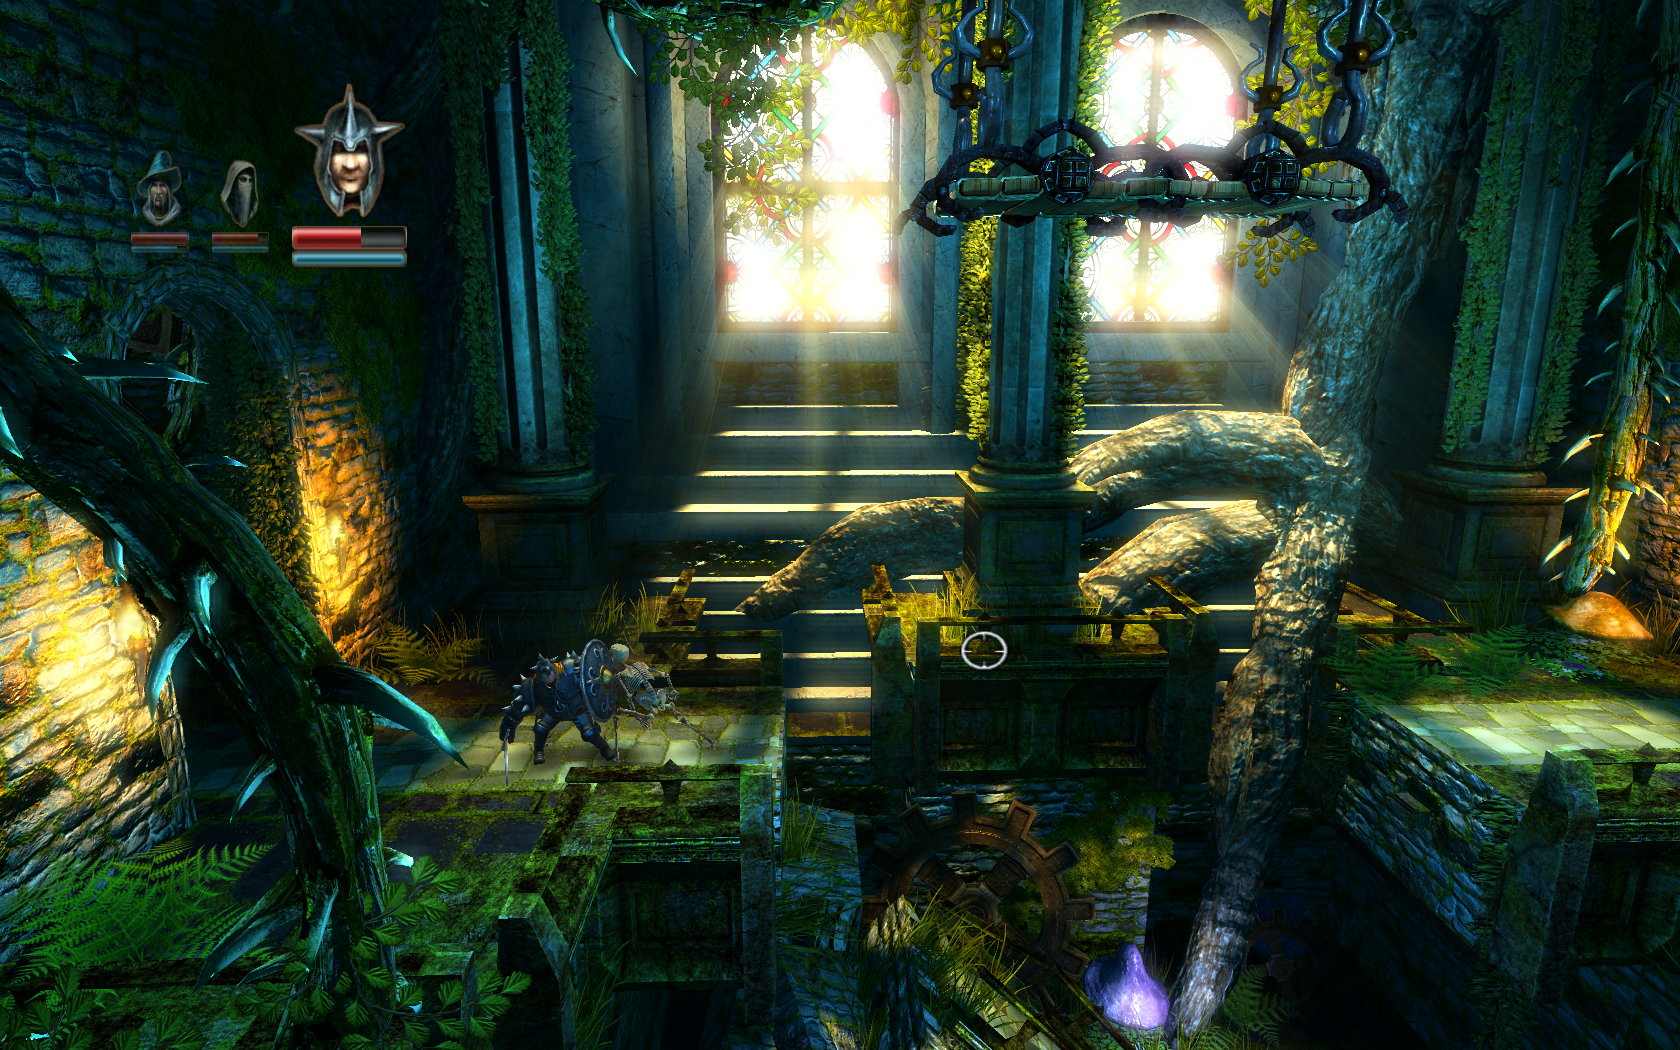 Scene from the game Trine.